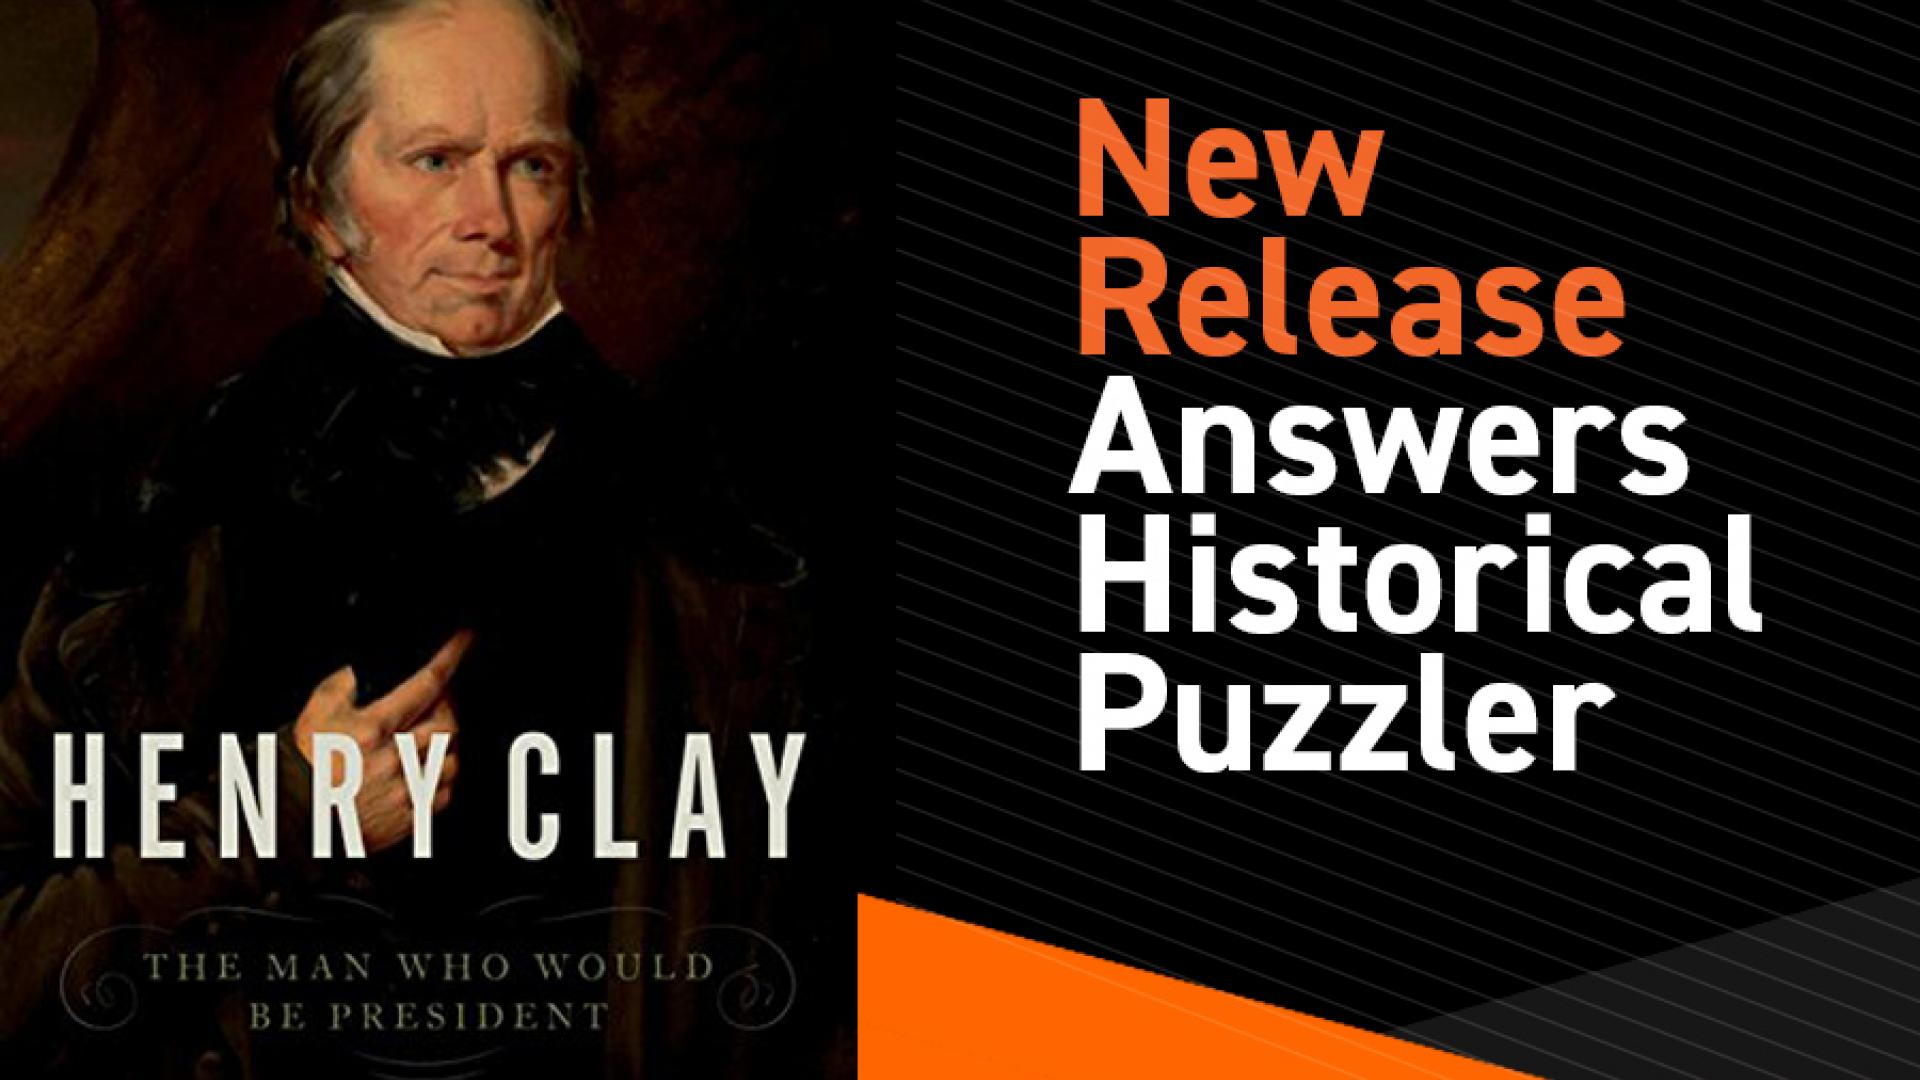 Jim Klotter's new book on Henry Clay